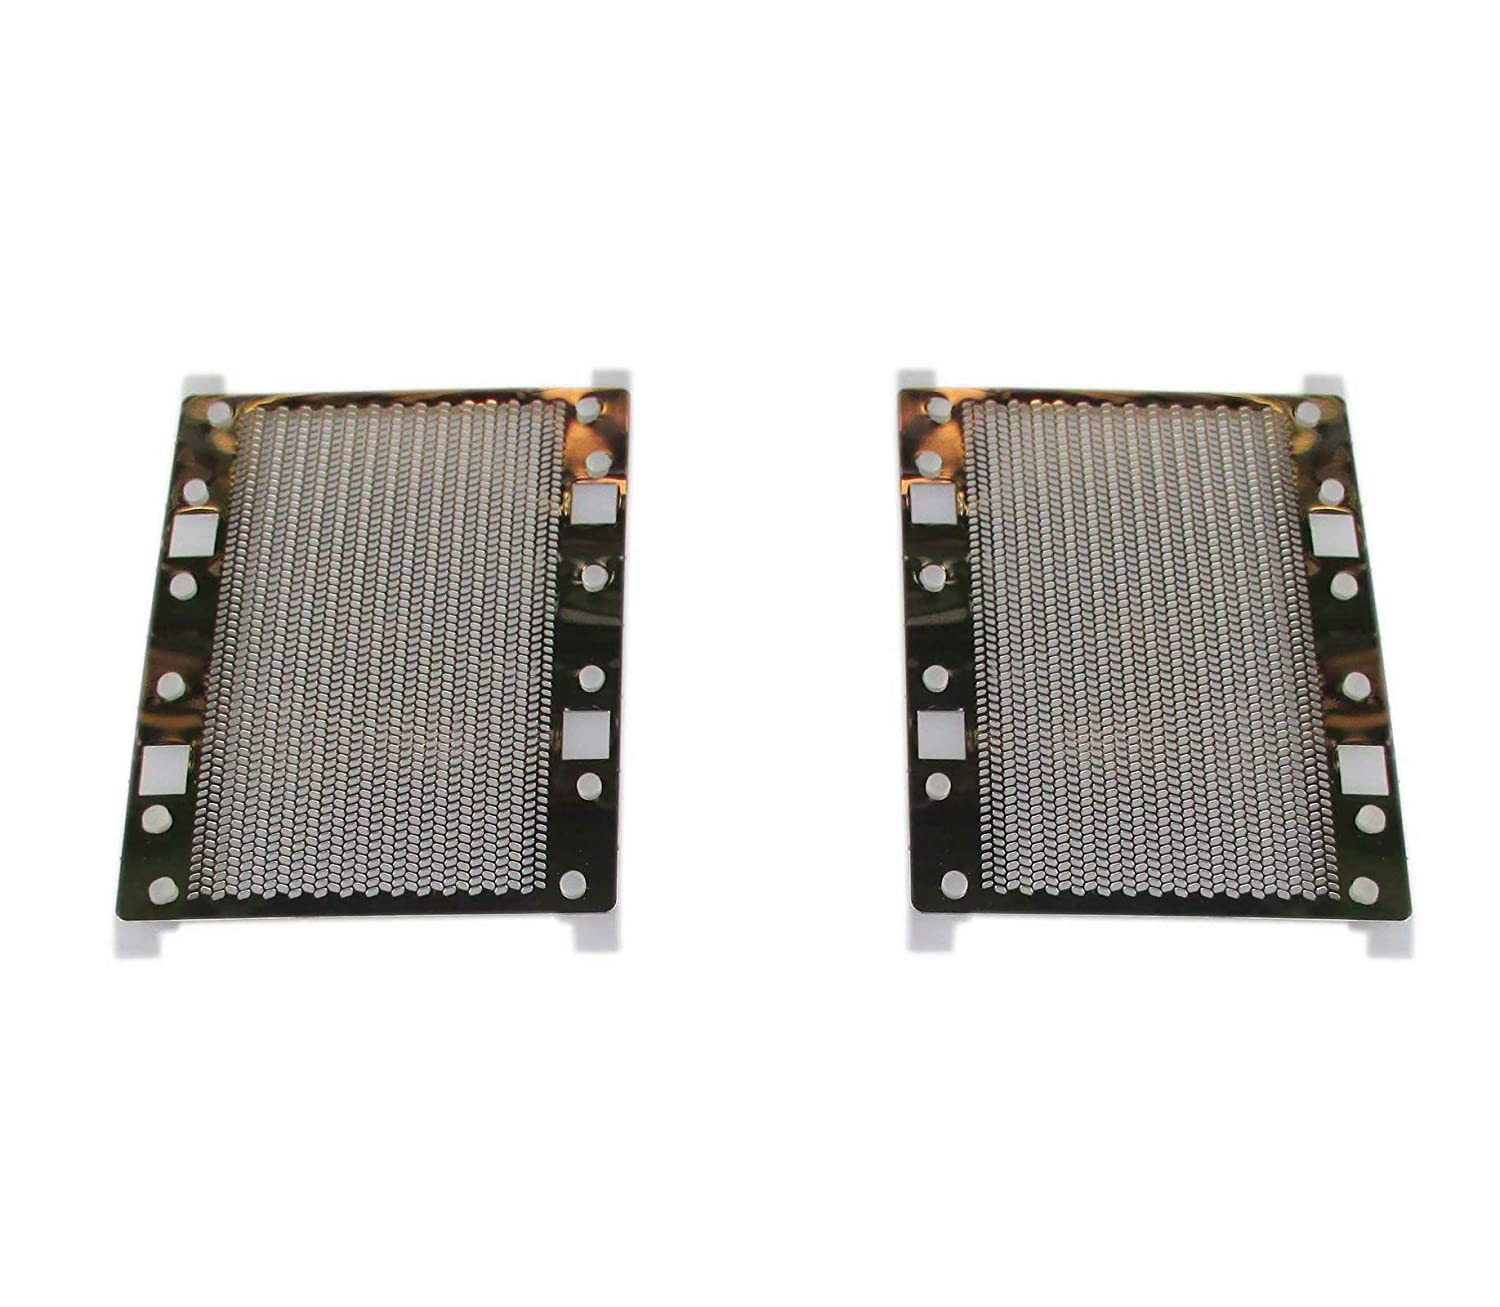 2pcs Shaver Replacement Jacksonville Mall Outer Foil for Screen SV-M261 Washington Mall SV-M Sanyo